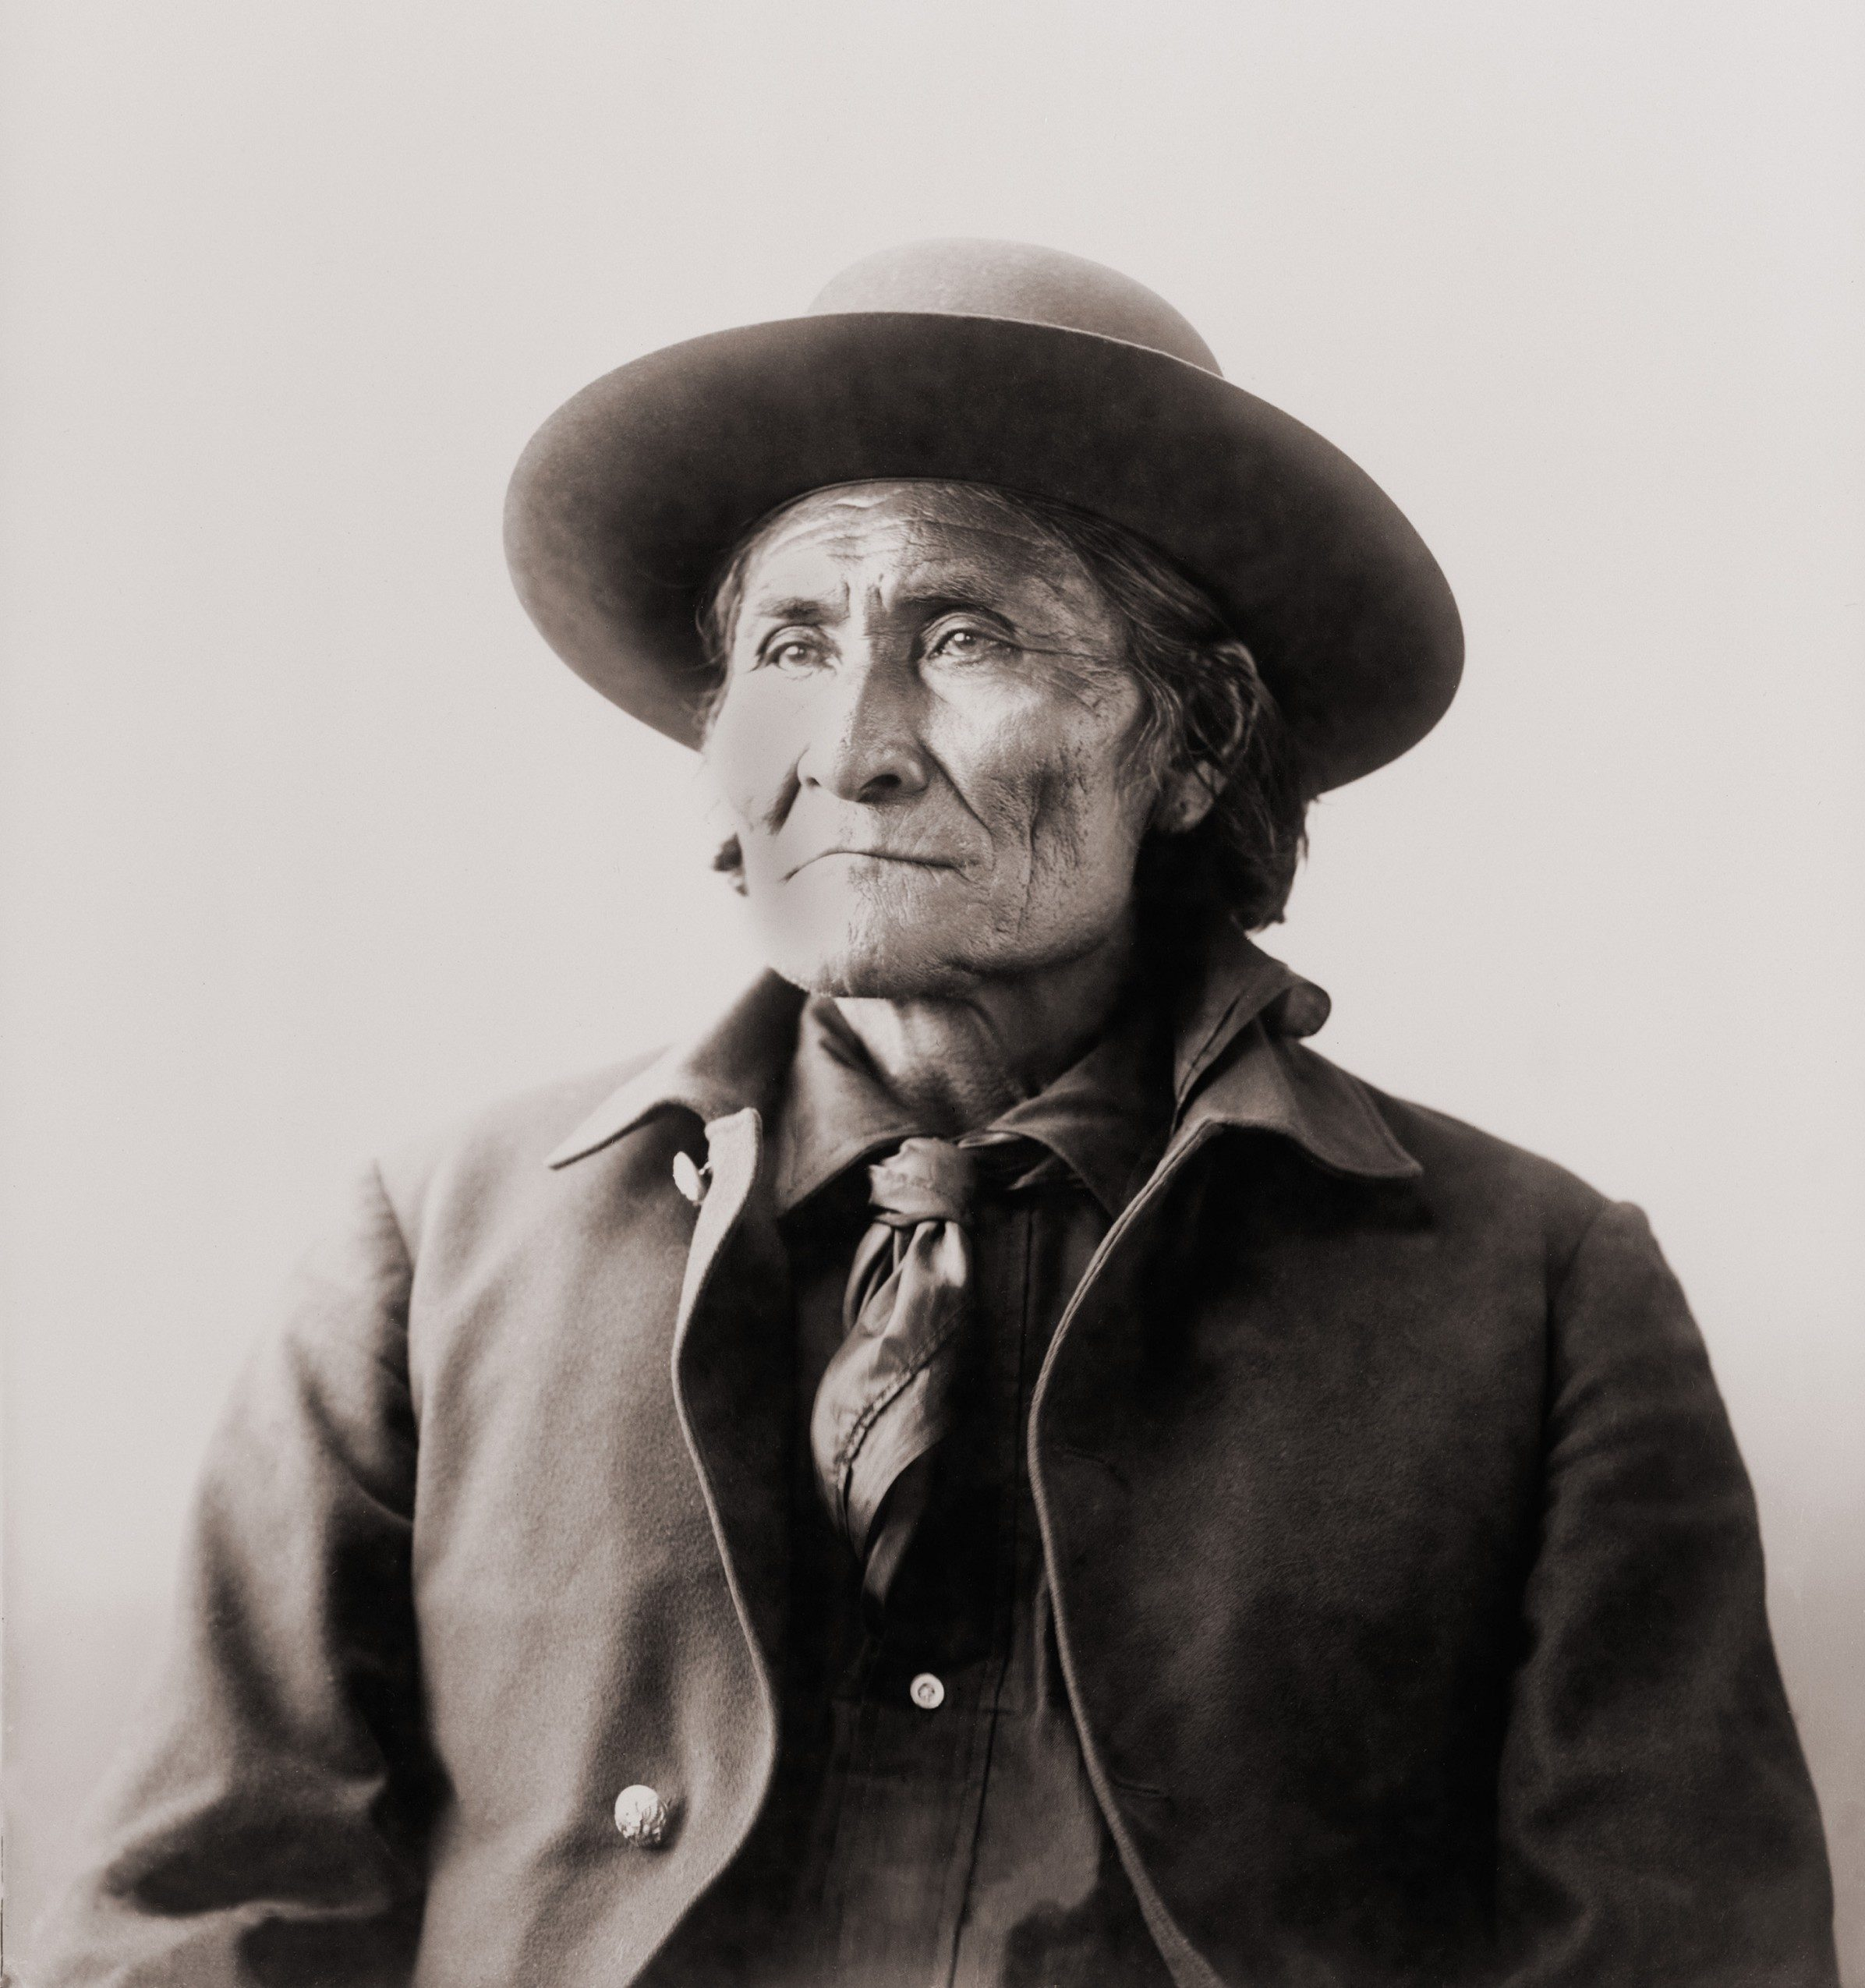 Geronimo (1829-1909), Chiricahua Apache warrior in 1898, when he was held with his family at Fort Sill, Oklahoma.